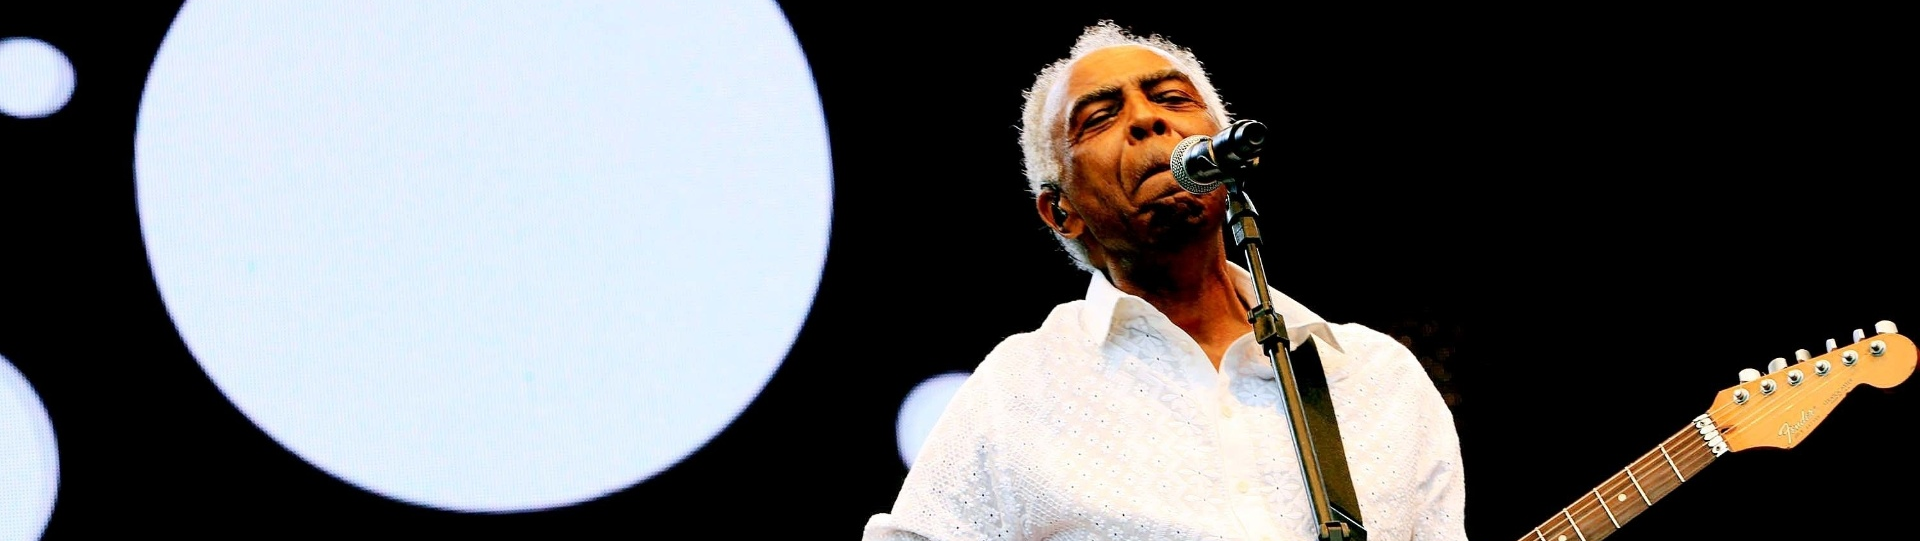 """Wednesday, July 21, 2010 at 7pm VIVA SÃO JOÃO!  Directed by Andrucha Waddington 